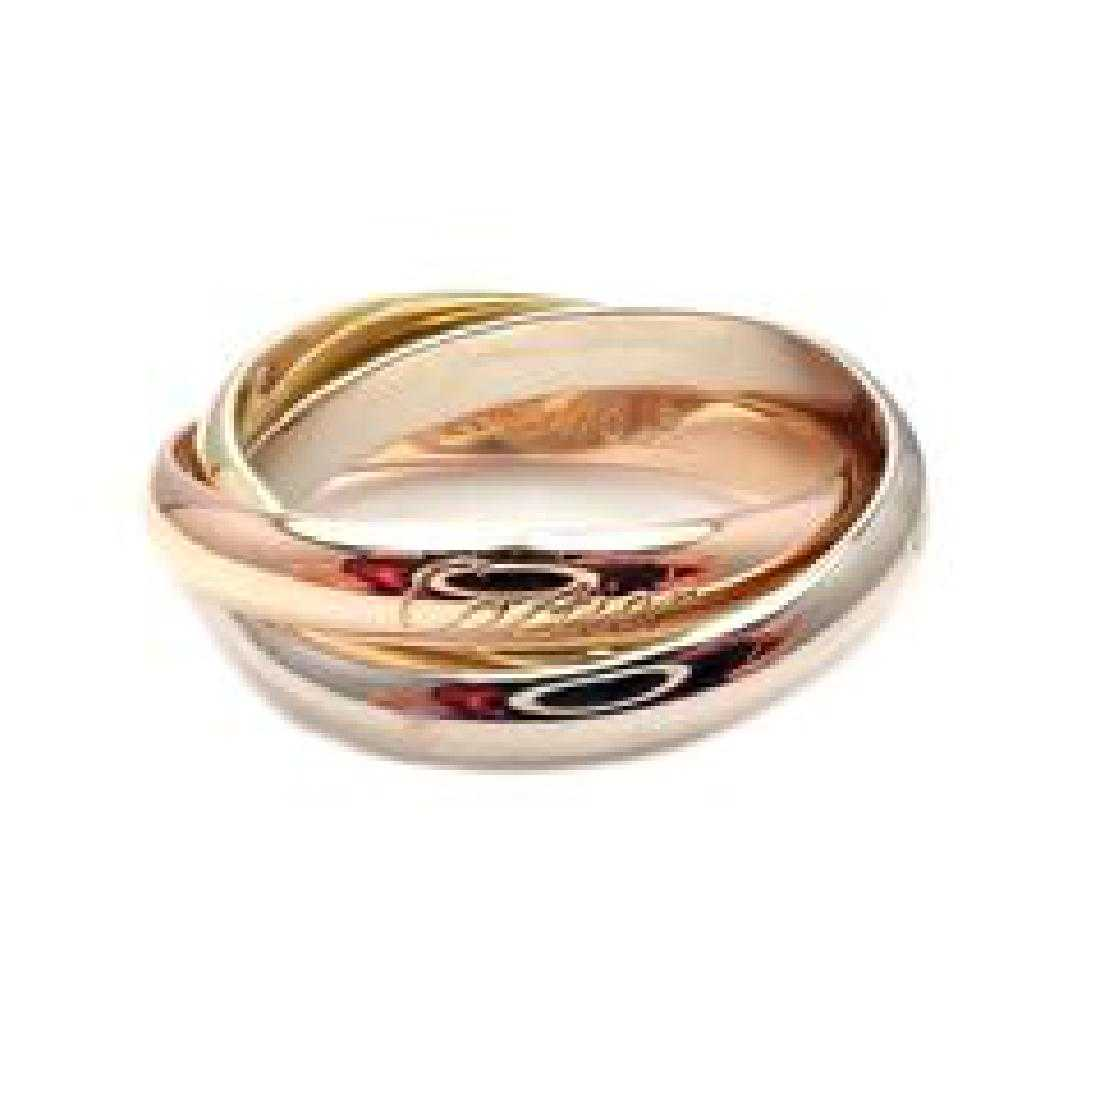 0602d742a646 Cartier 18k Tri-Color Gold Trinity Band Ring Size 63 10